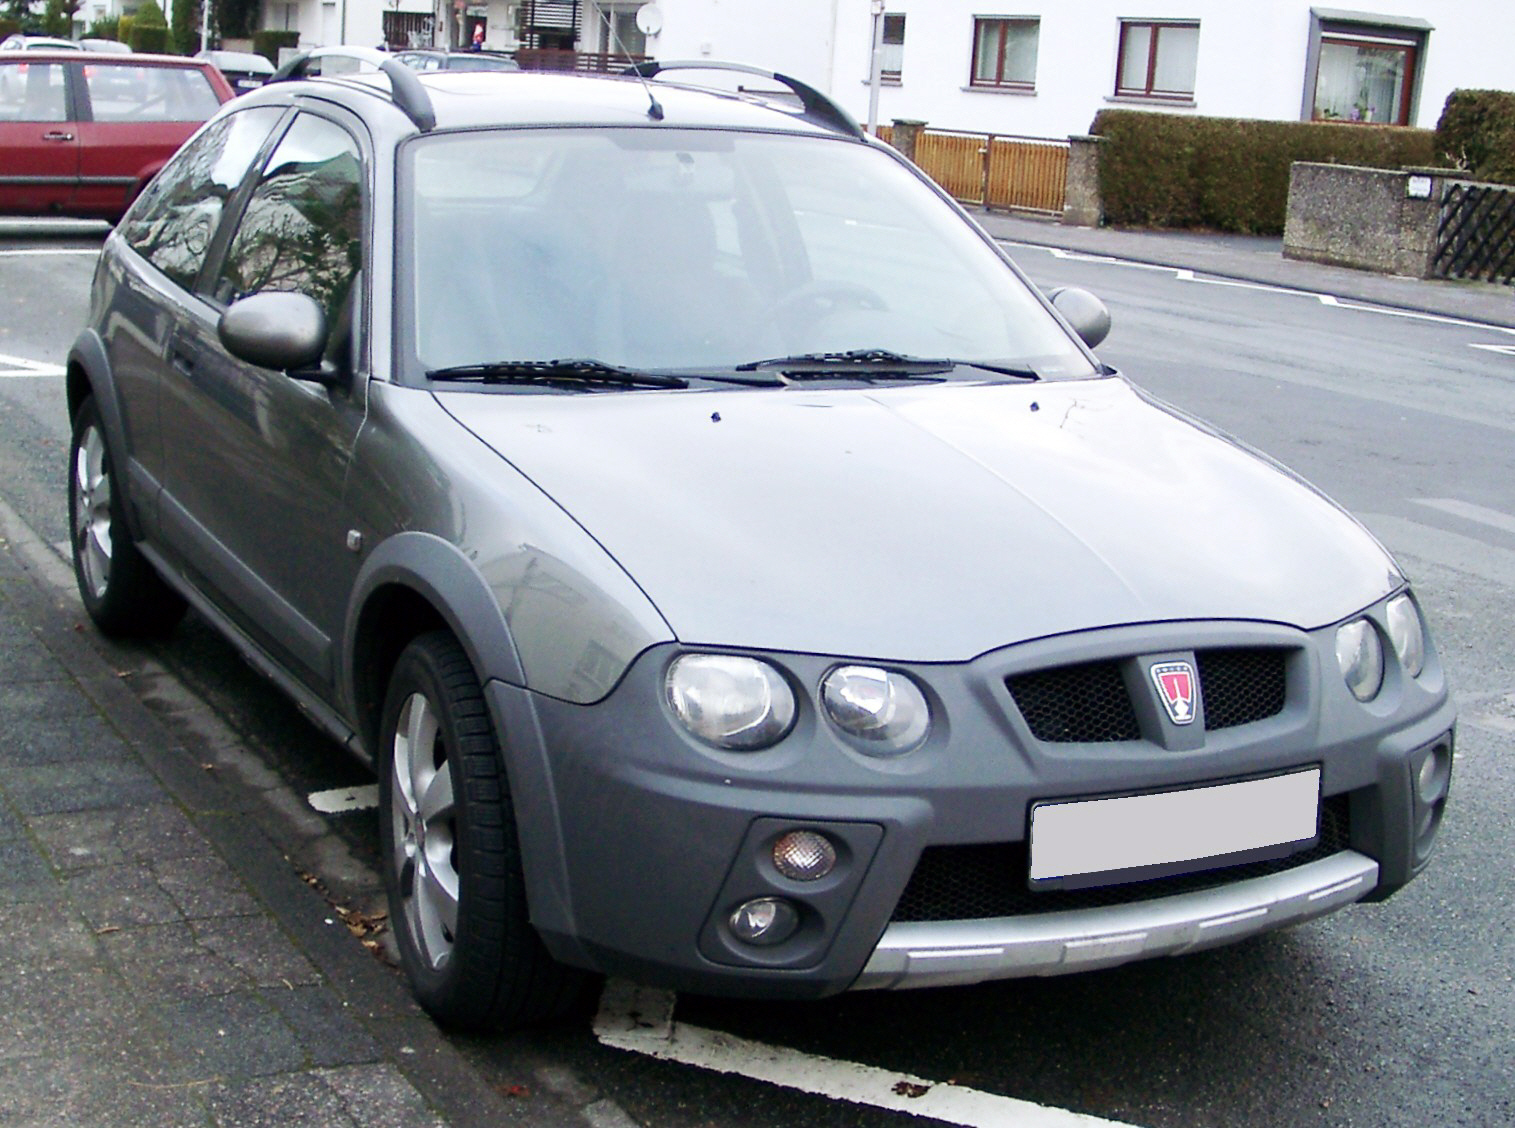 2005 Rover Streetwise #2